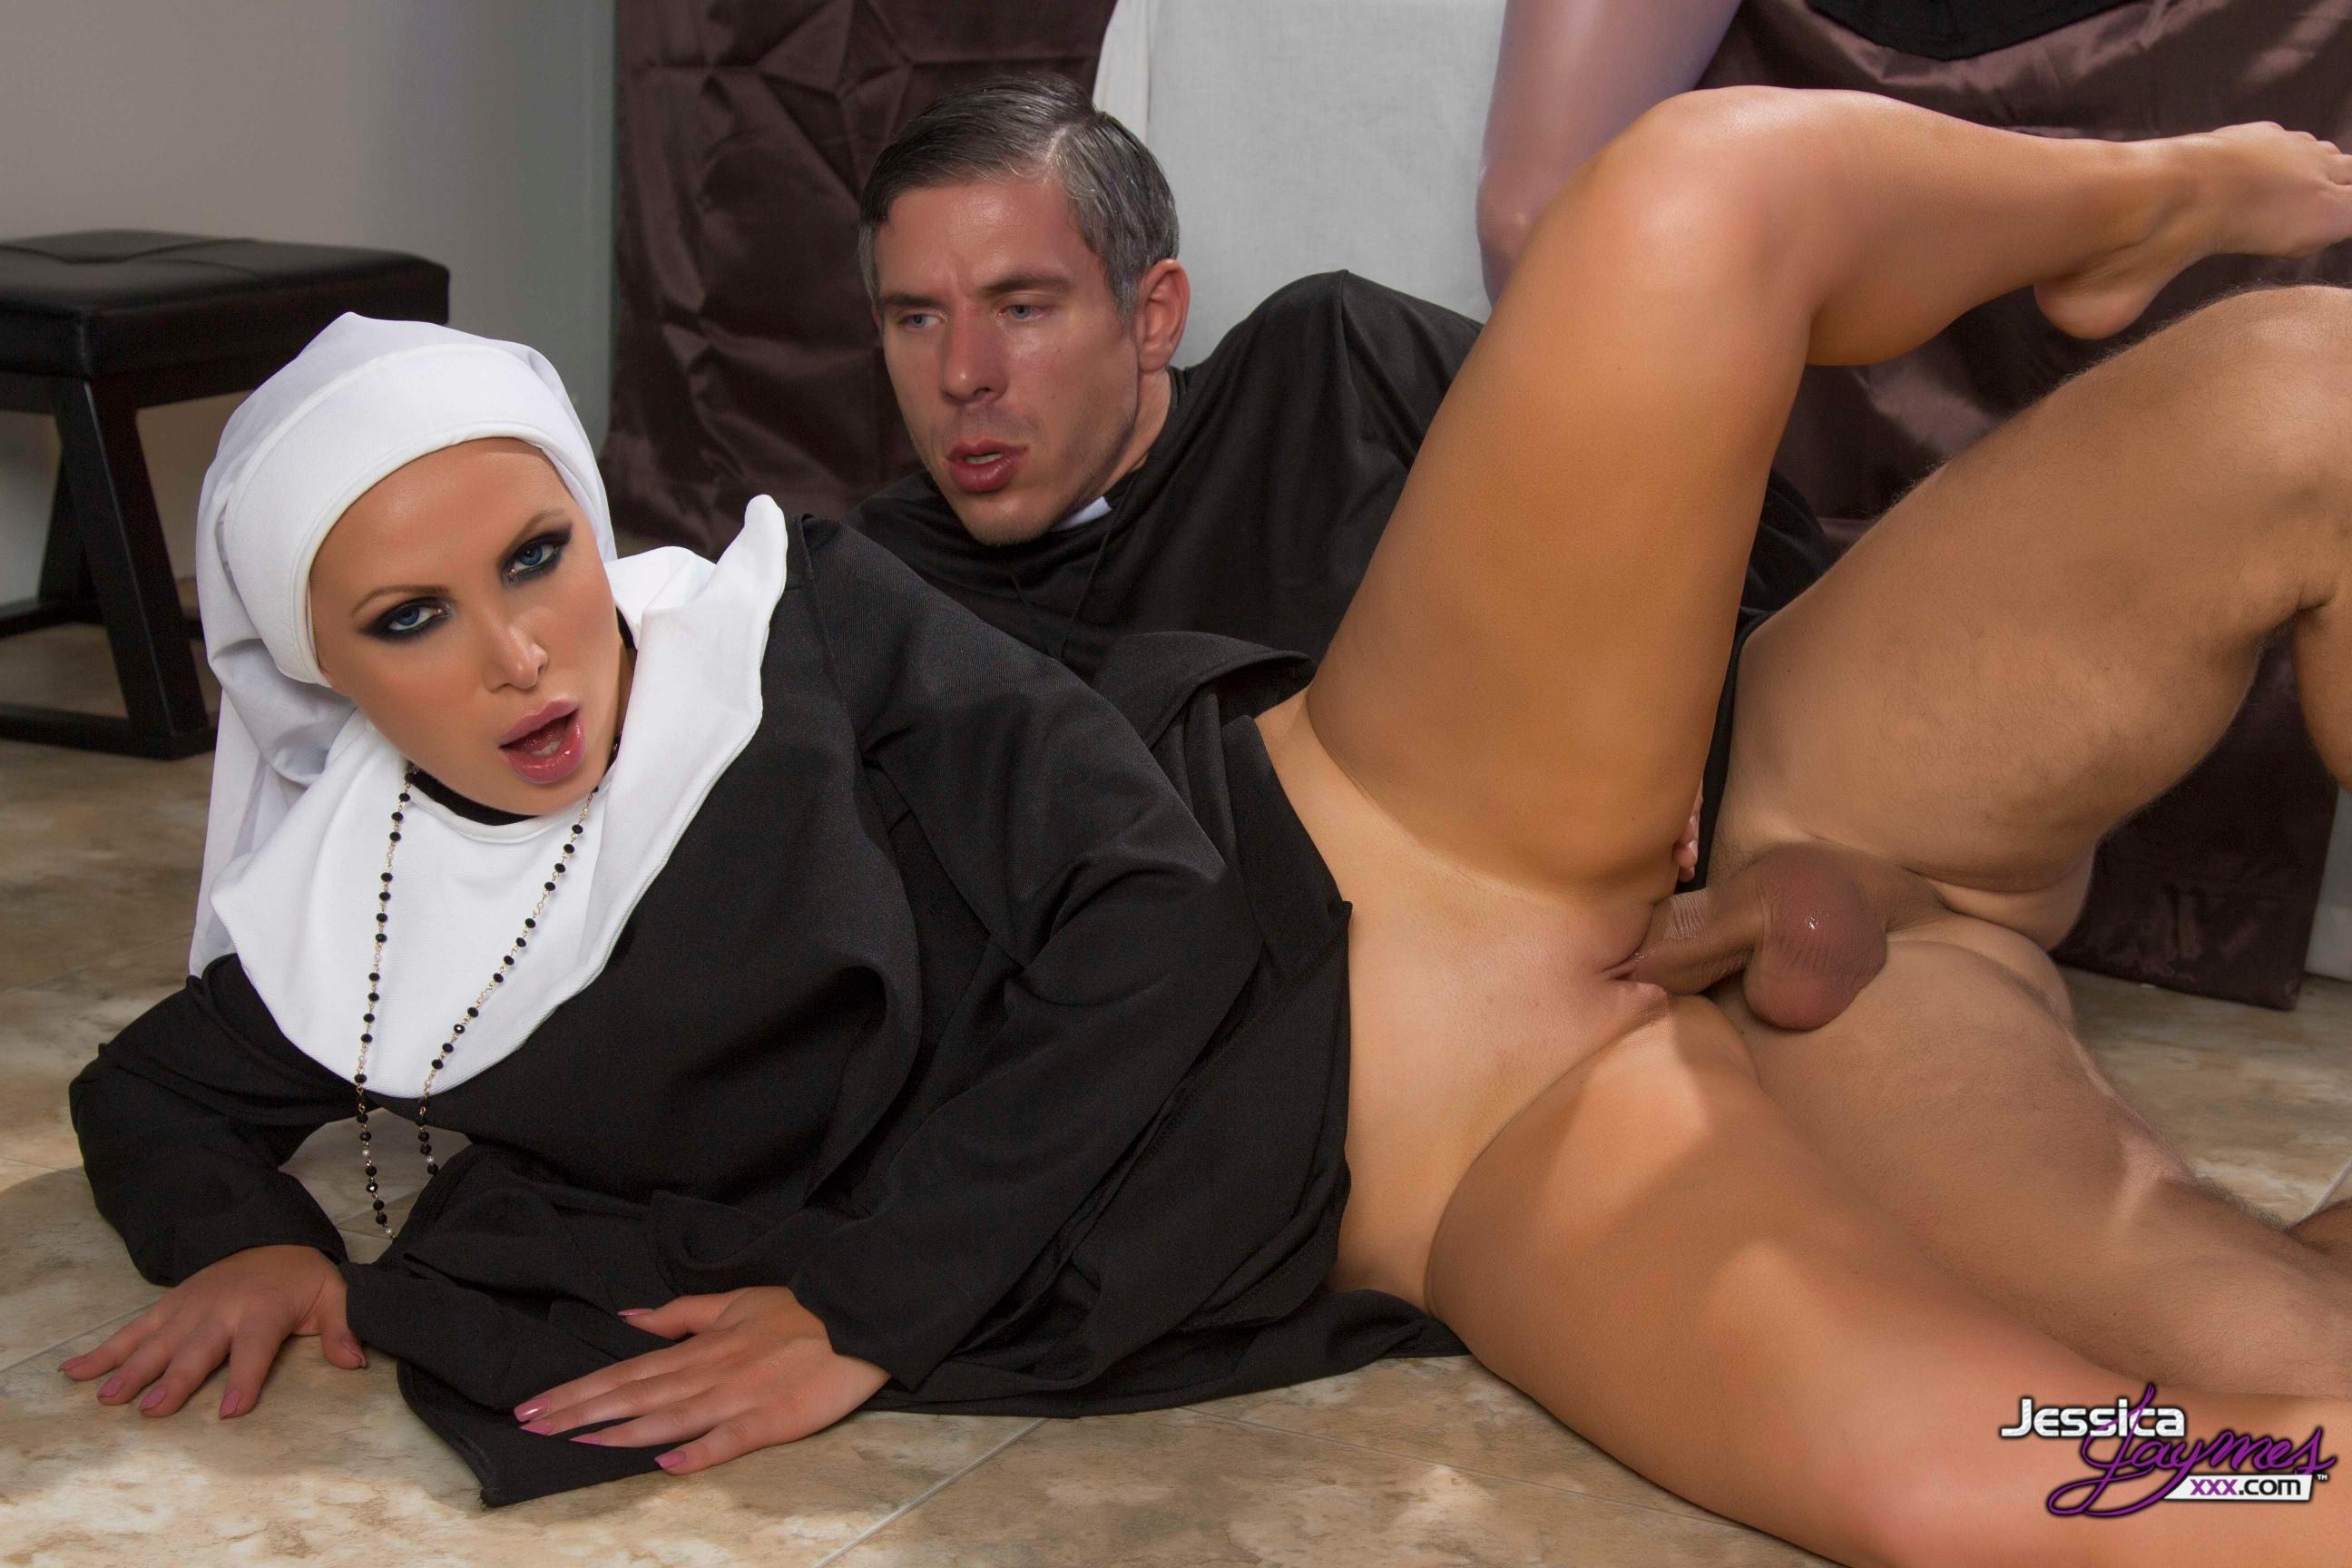 Missionary position priest sex story